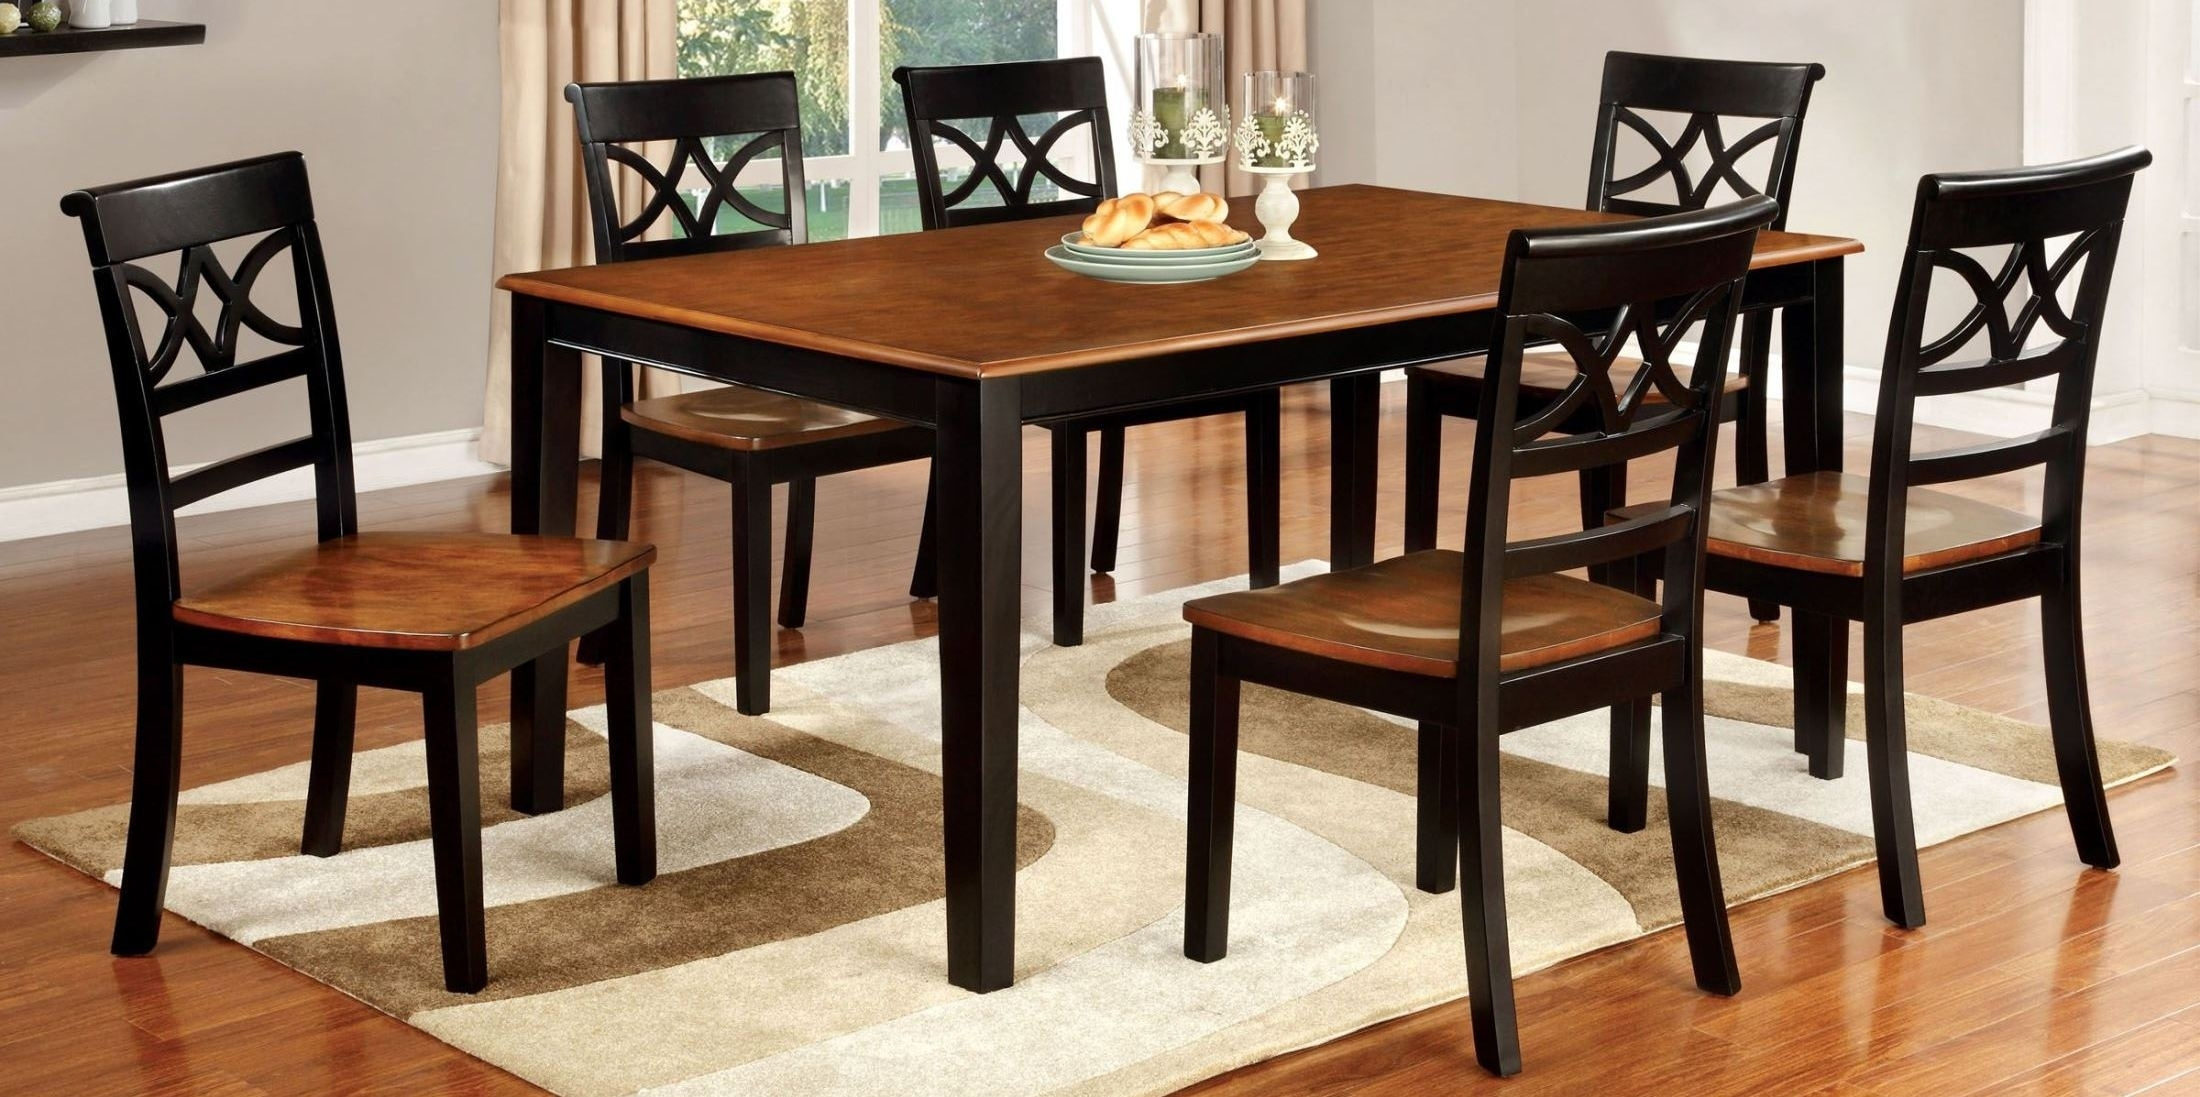 Furniture Of America Torrington Black And Cherry Rectangular Pertaining To Recent Craftsman 7 Piece Rectangle Extension Dining Sets With Arm & Side Chairs (Image 7 of 20)